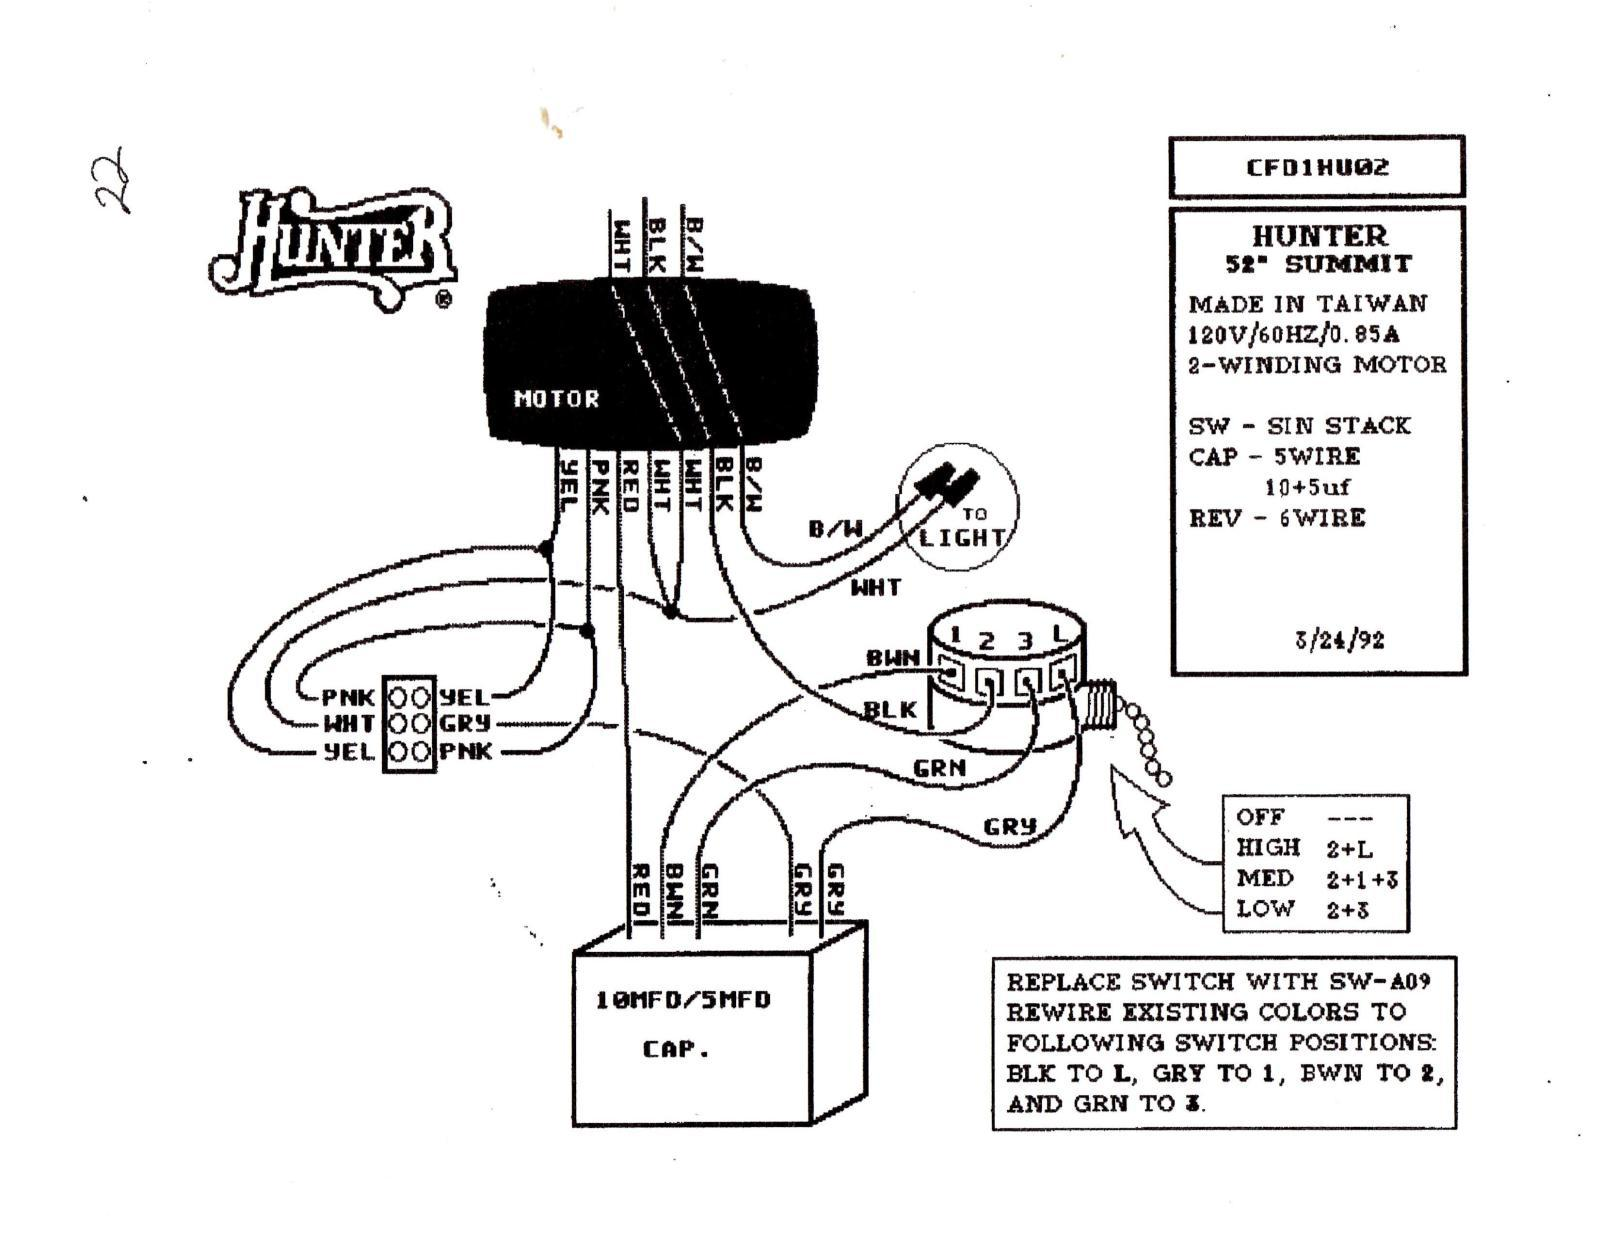 hampton bay ceiling fan wiring diagram checking your hampton bay ceiling fan wiring to avoid ... hampton bay ceiling fan wiring diagram red wire